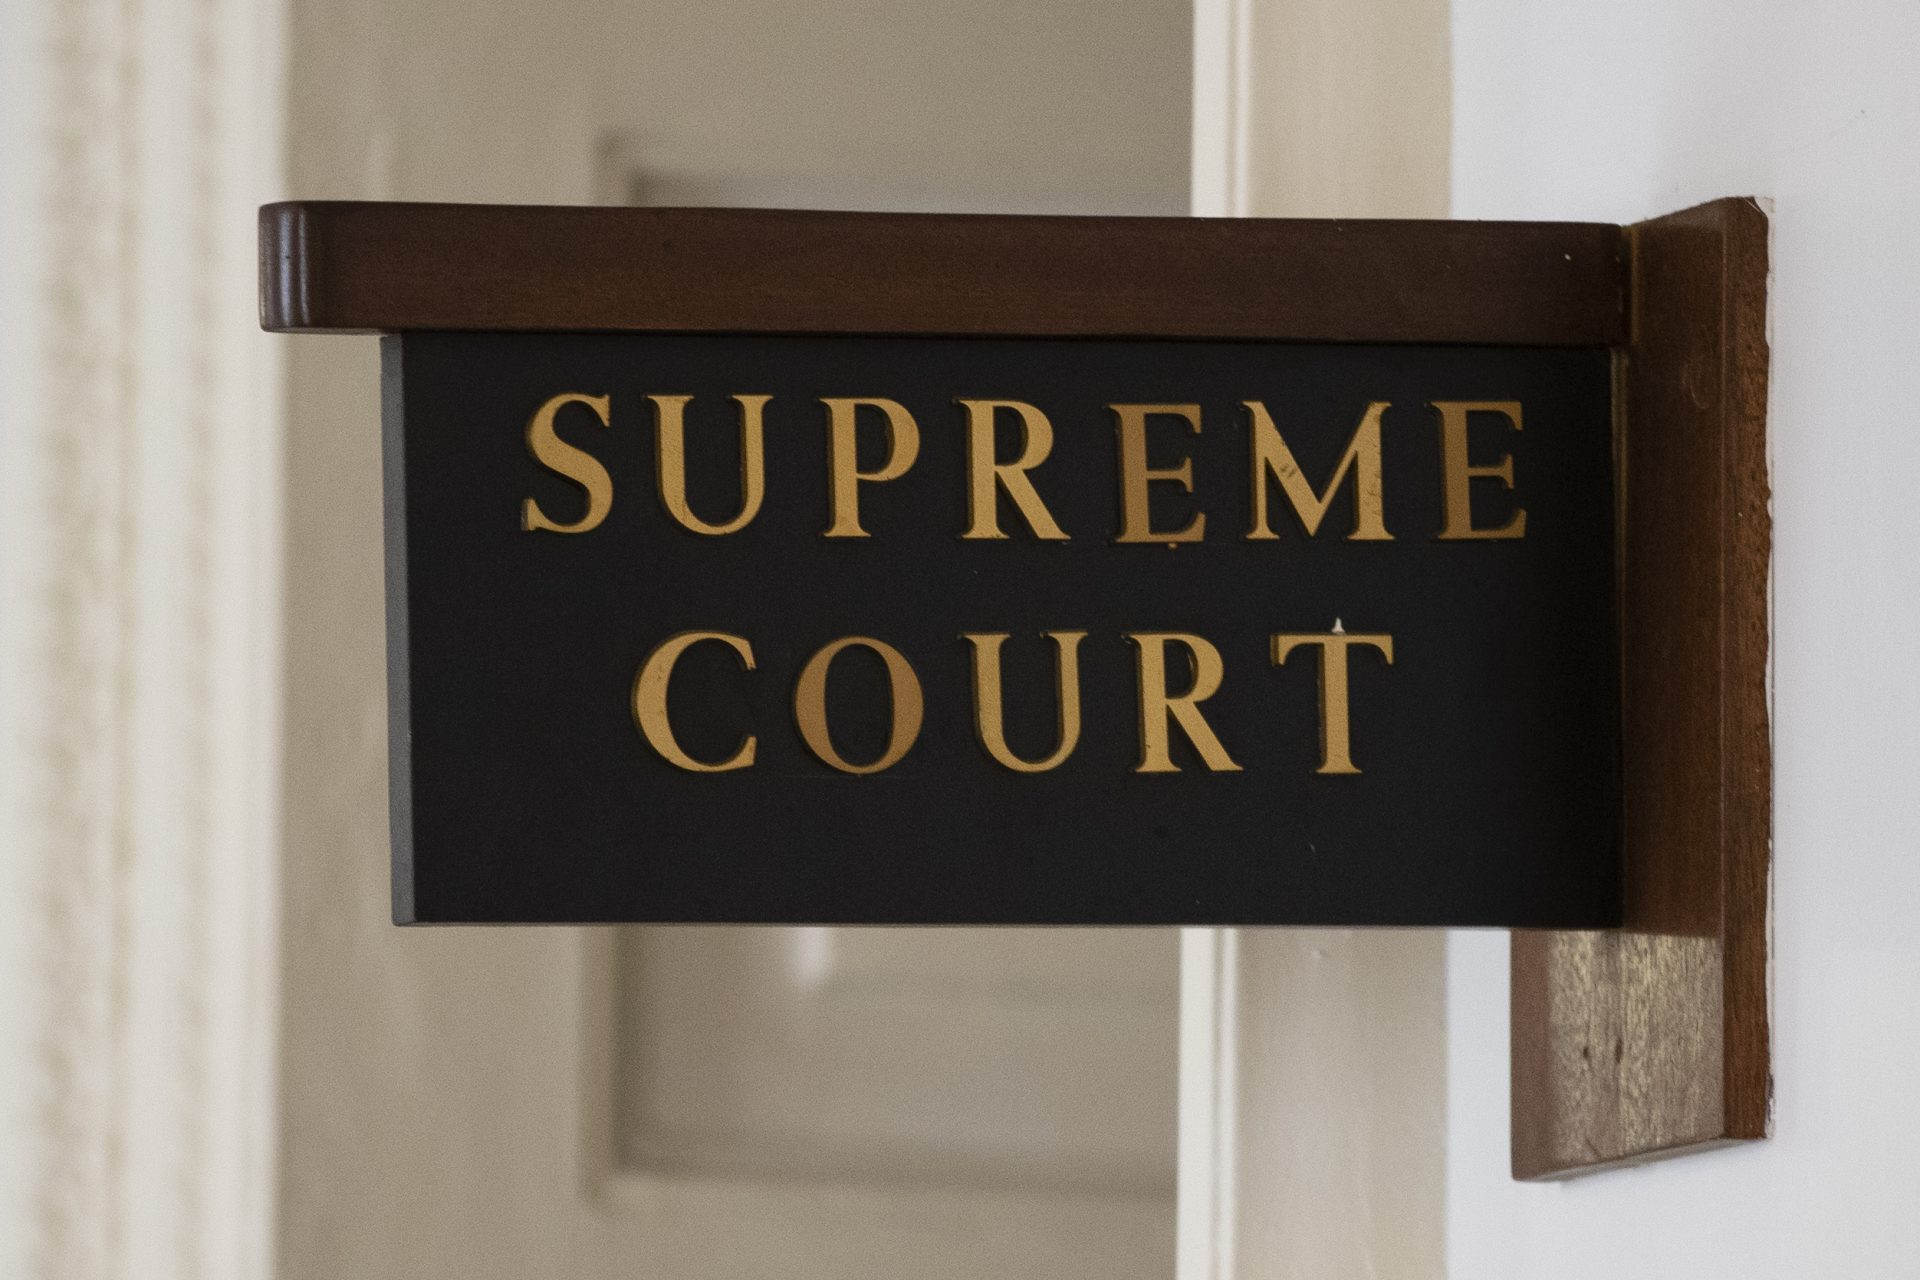 The sign for the Pennsylvania Supreme Court is posted by its door at City Hall in Philadelphia, Wednesday, Sept. 11, 2019.